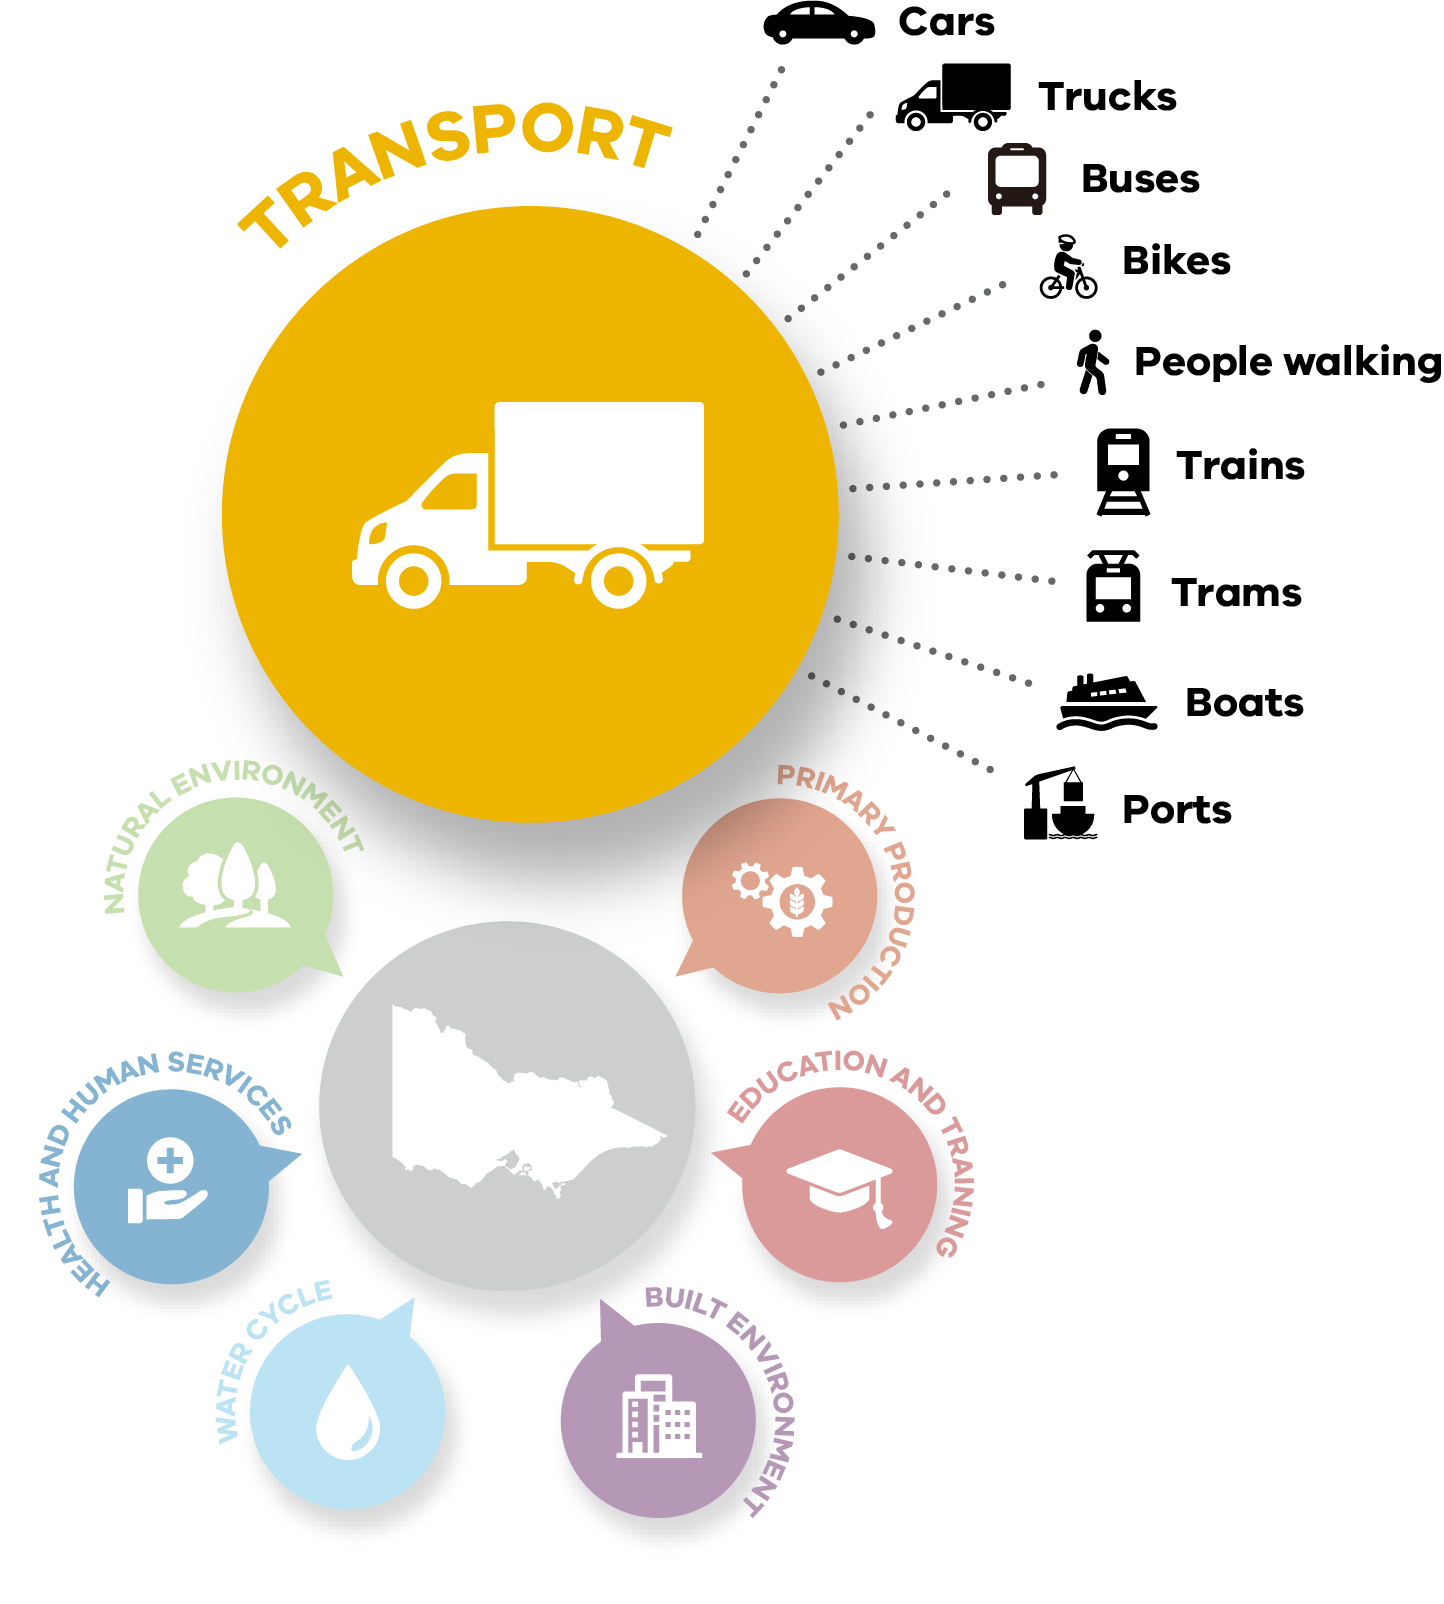 The Transport system includes cars, trucks, buses, bikes, people walking, trains, trams, boats, and ports. It is one of seven systems creating Climate Change Adaptation Action Plans.